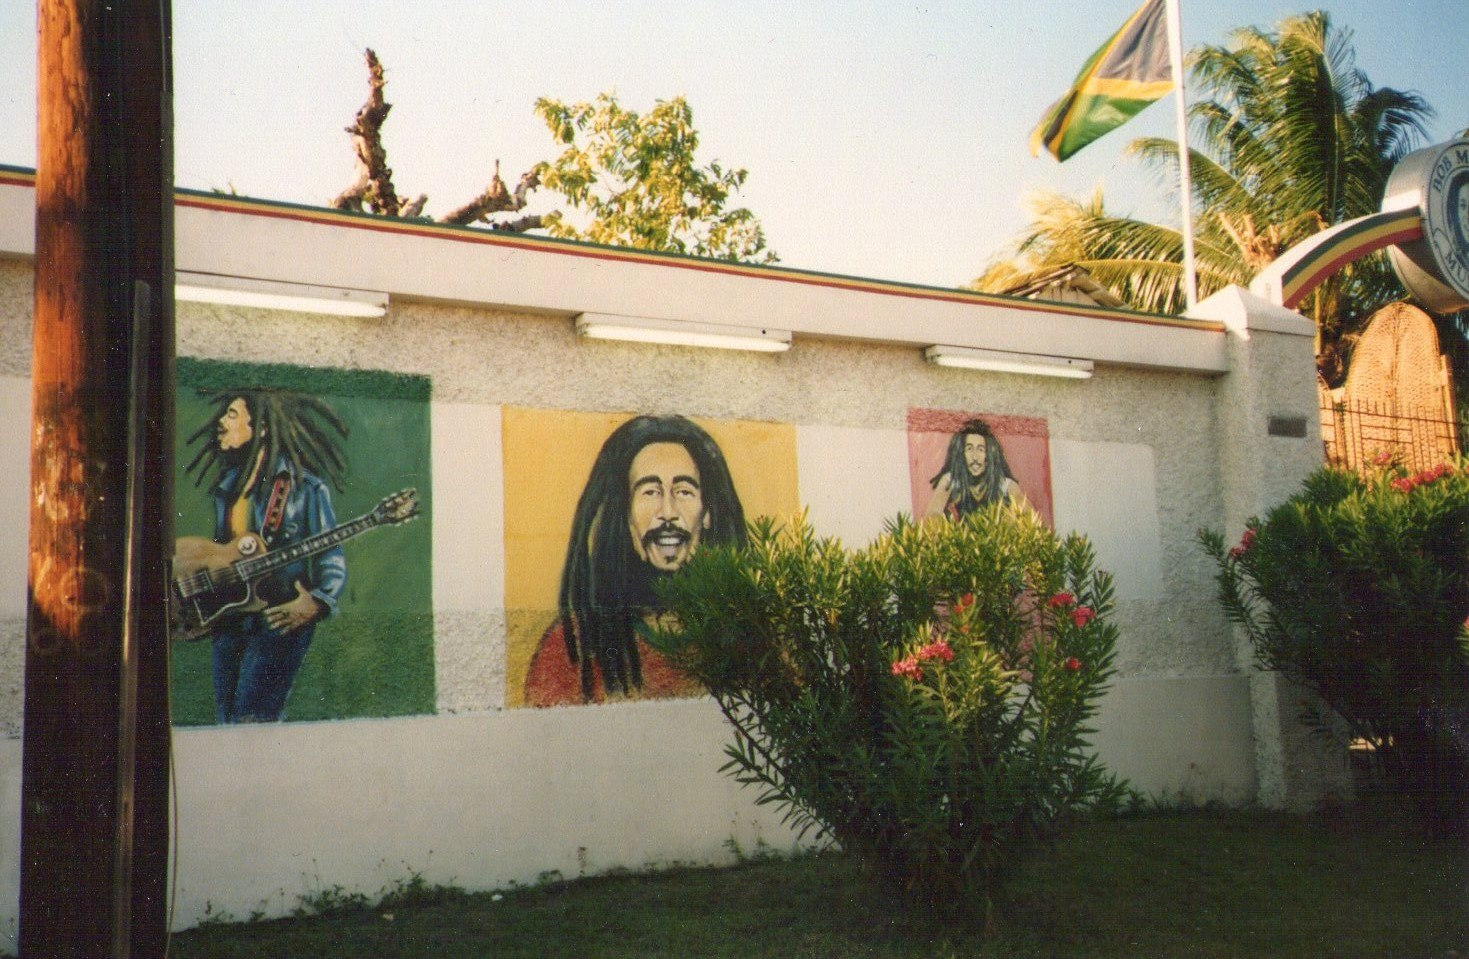 6 Reasons To Visit The Bob Marley Museum in Jamaica